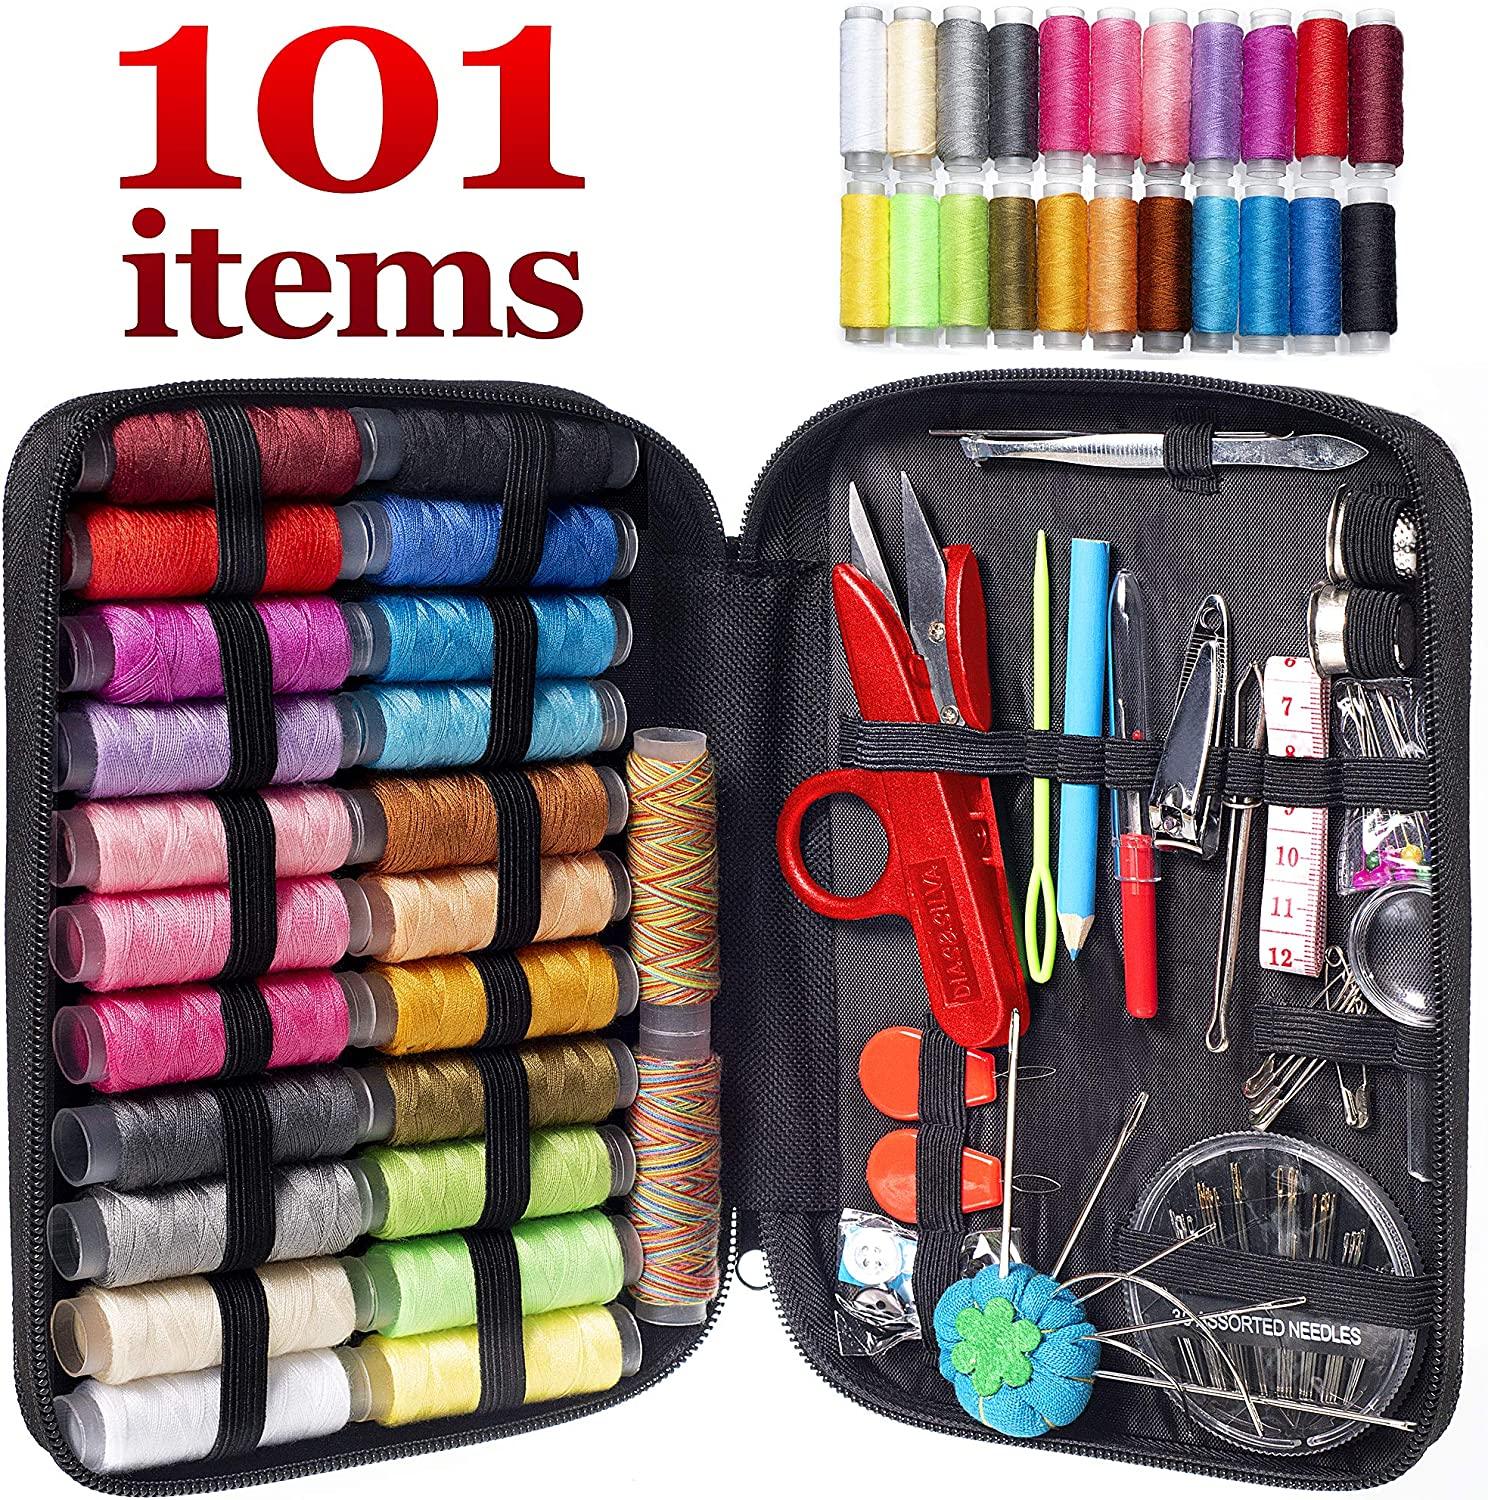 MYFOXI Kit for Adults, Kids, Home, Travel, Sew repair